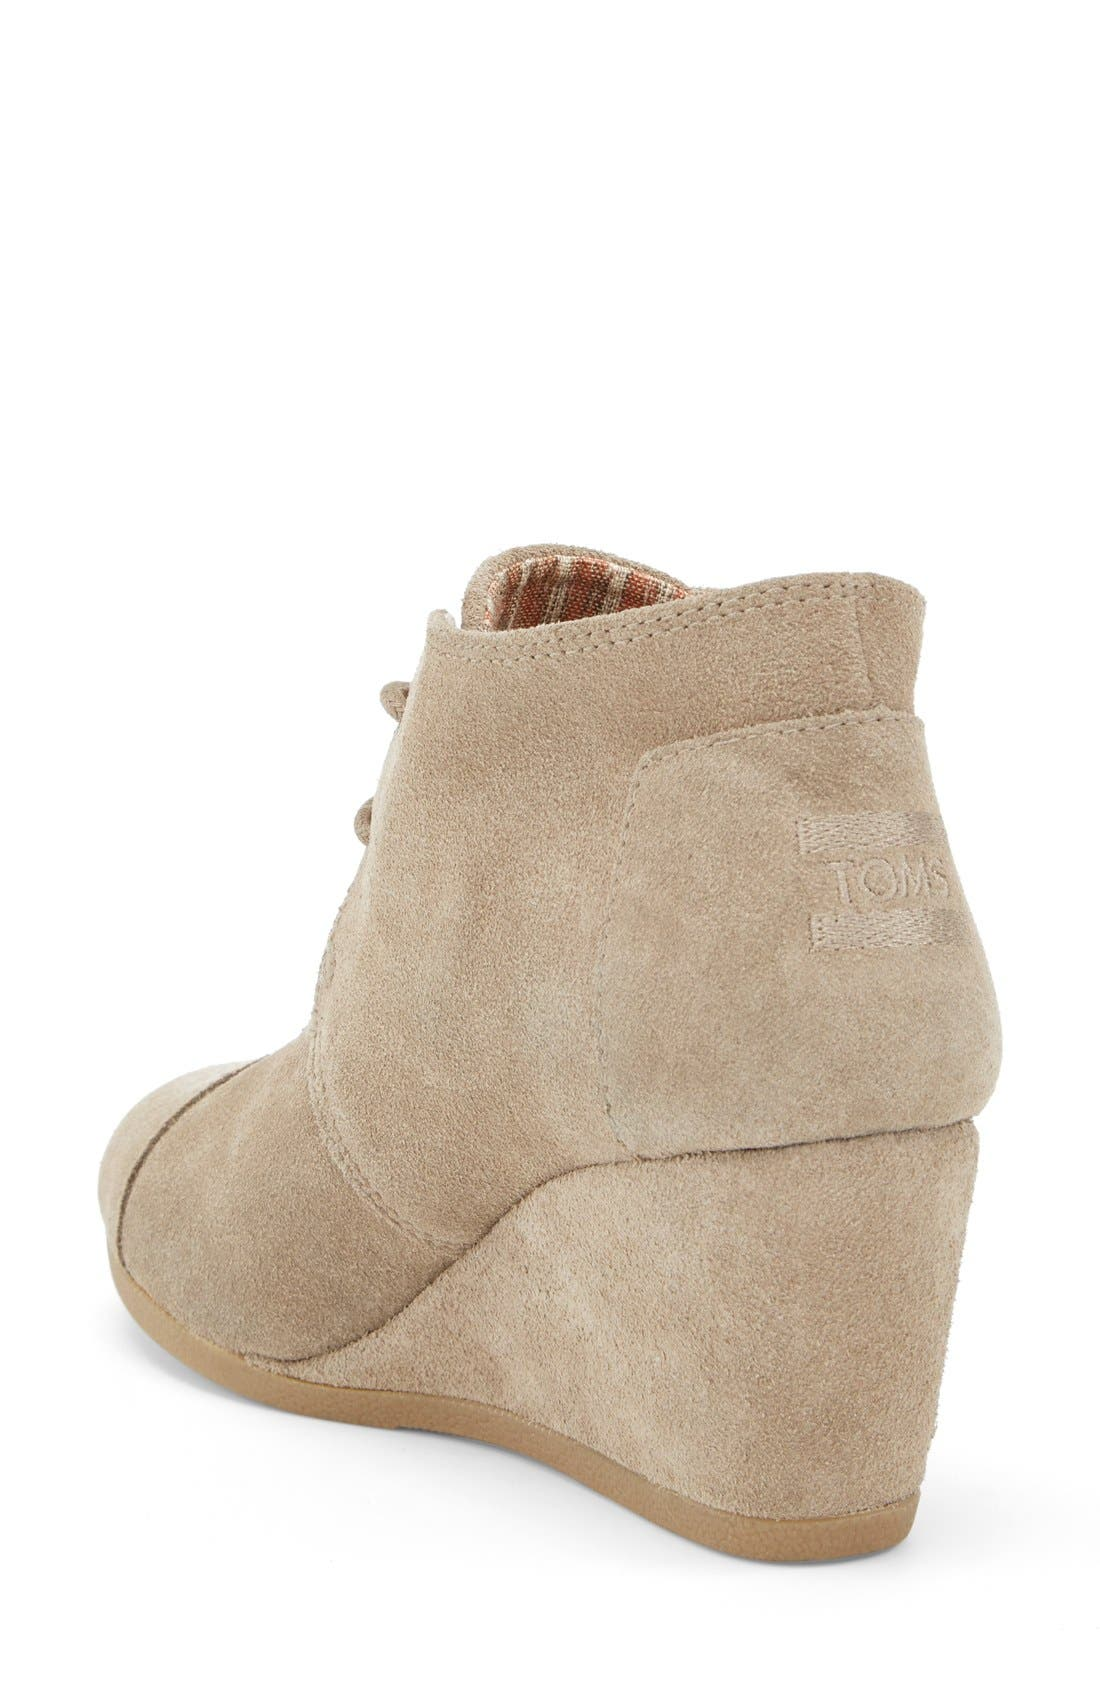 'Desert' Wedge Bootie,                             Alternate thumbnail 3, color,                             250